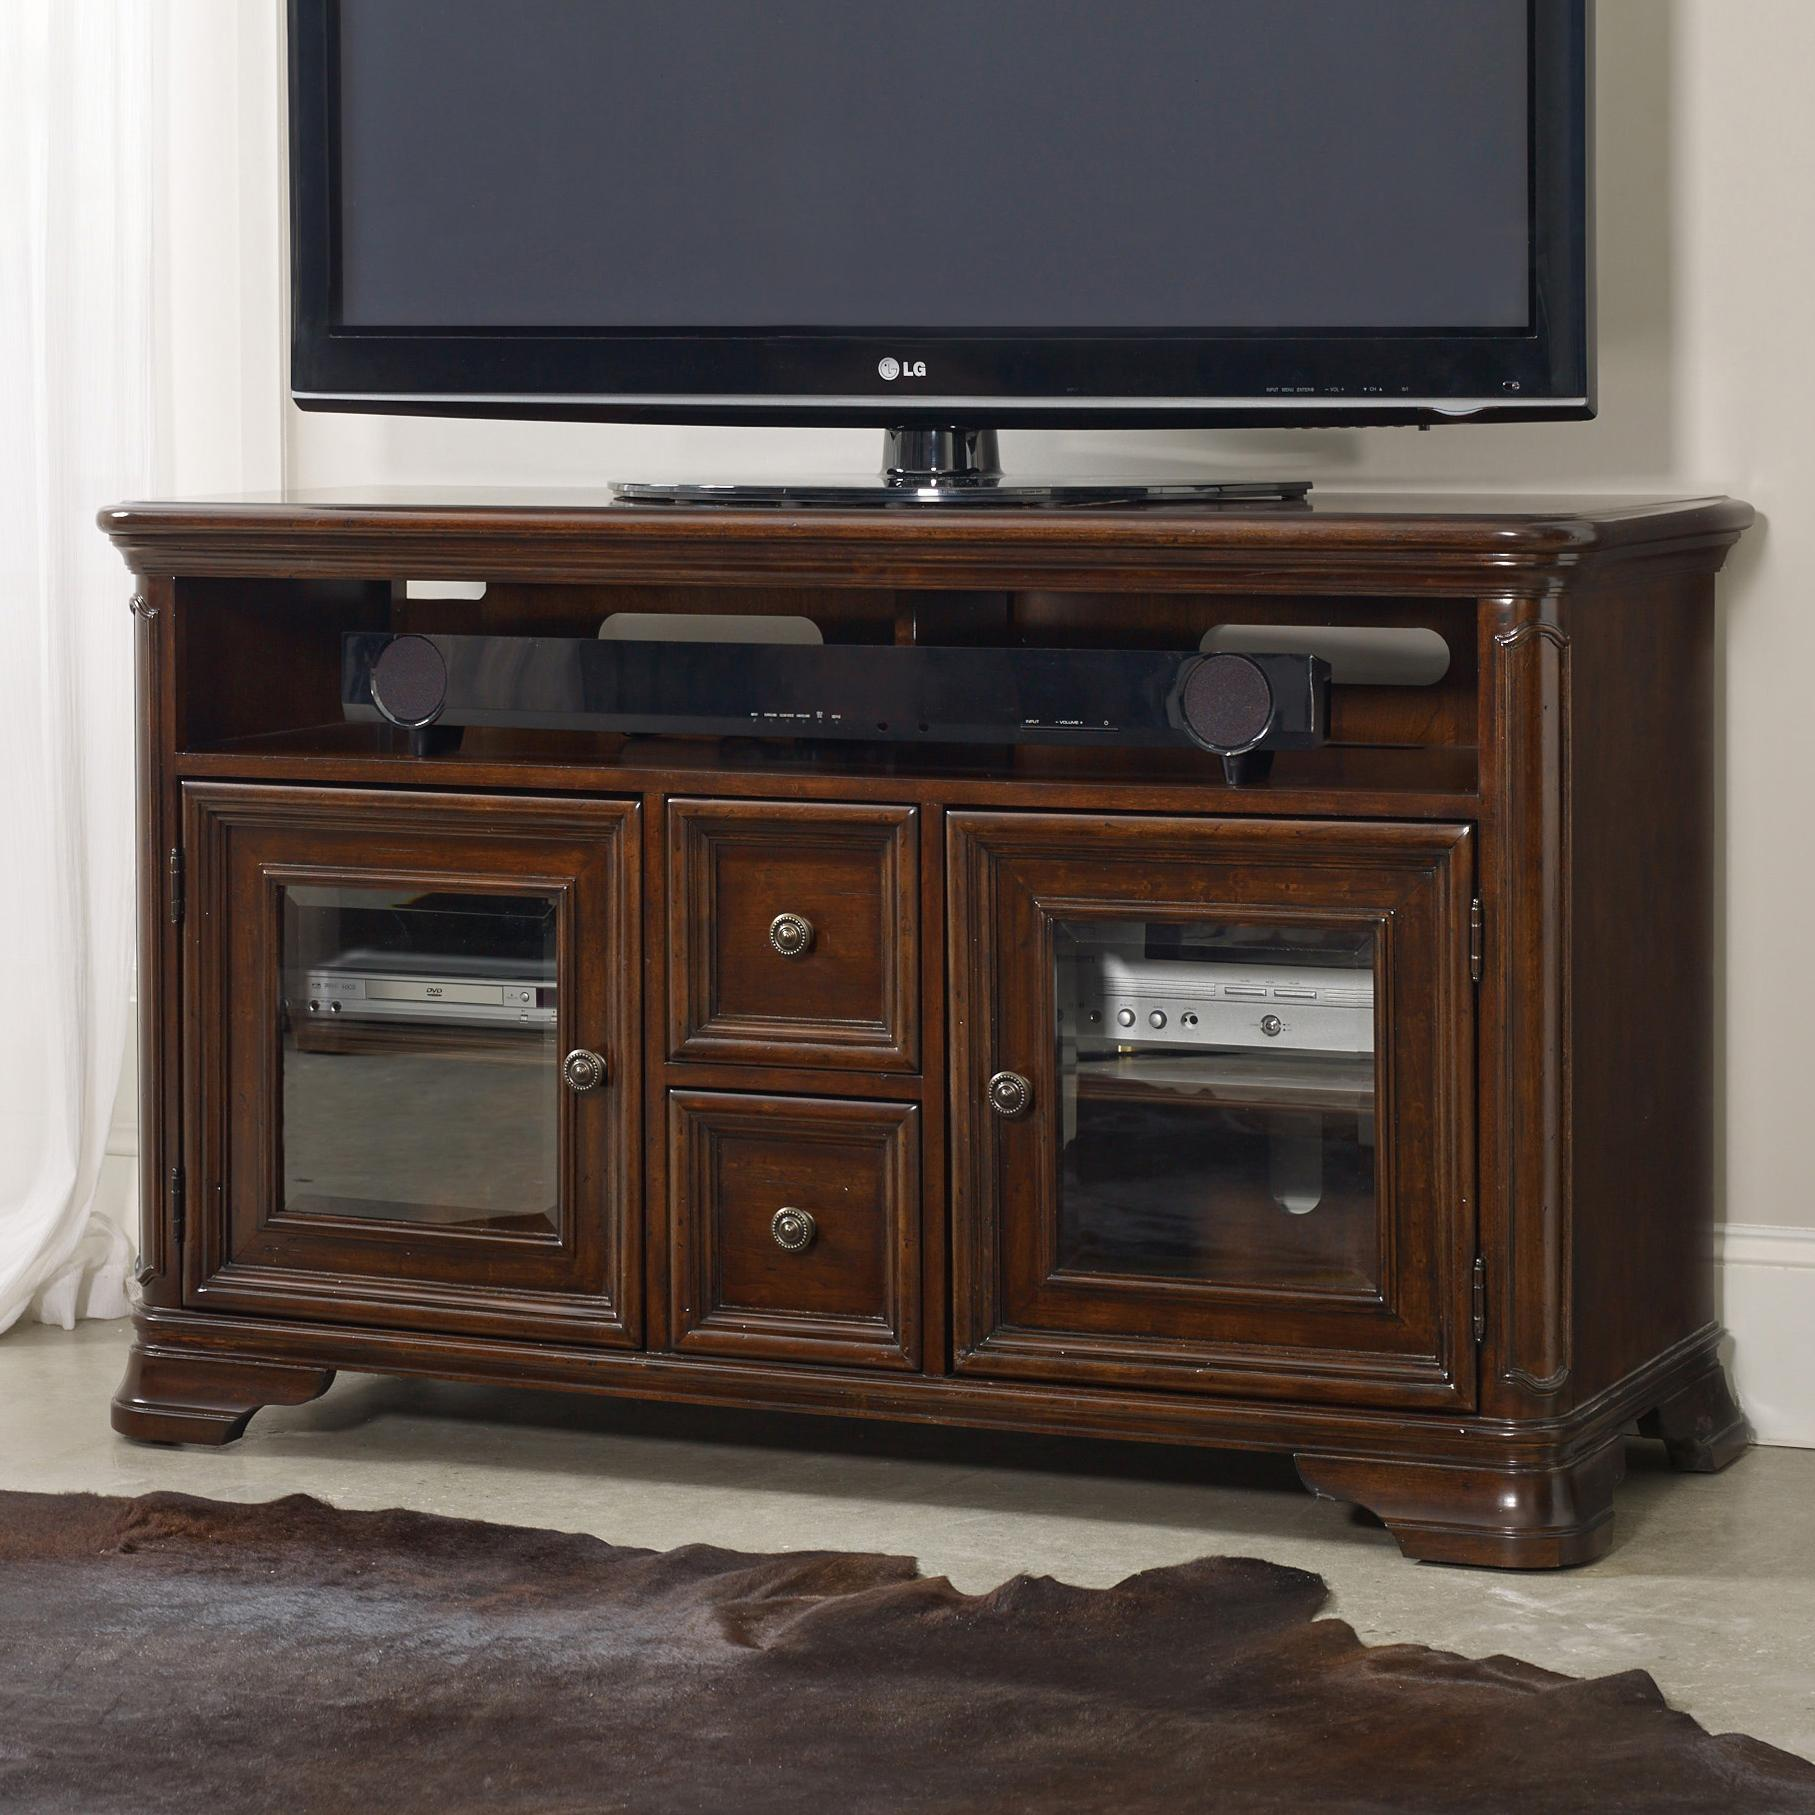 Hamilton Home Haddon Hall 54 Inch Entertainment Console - Item Number: 5238-55459